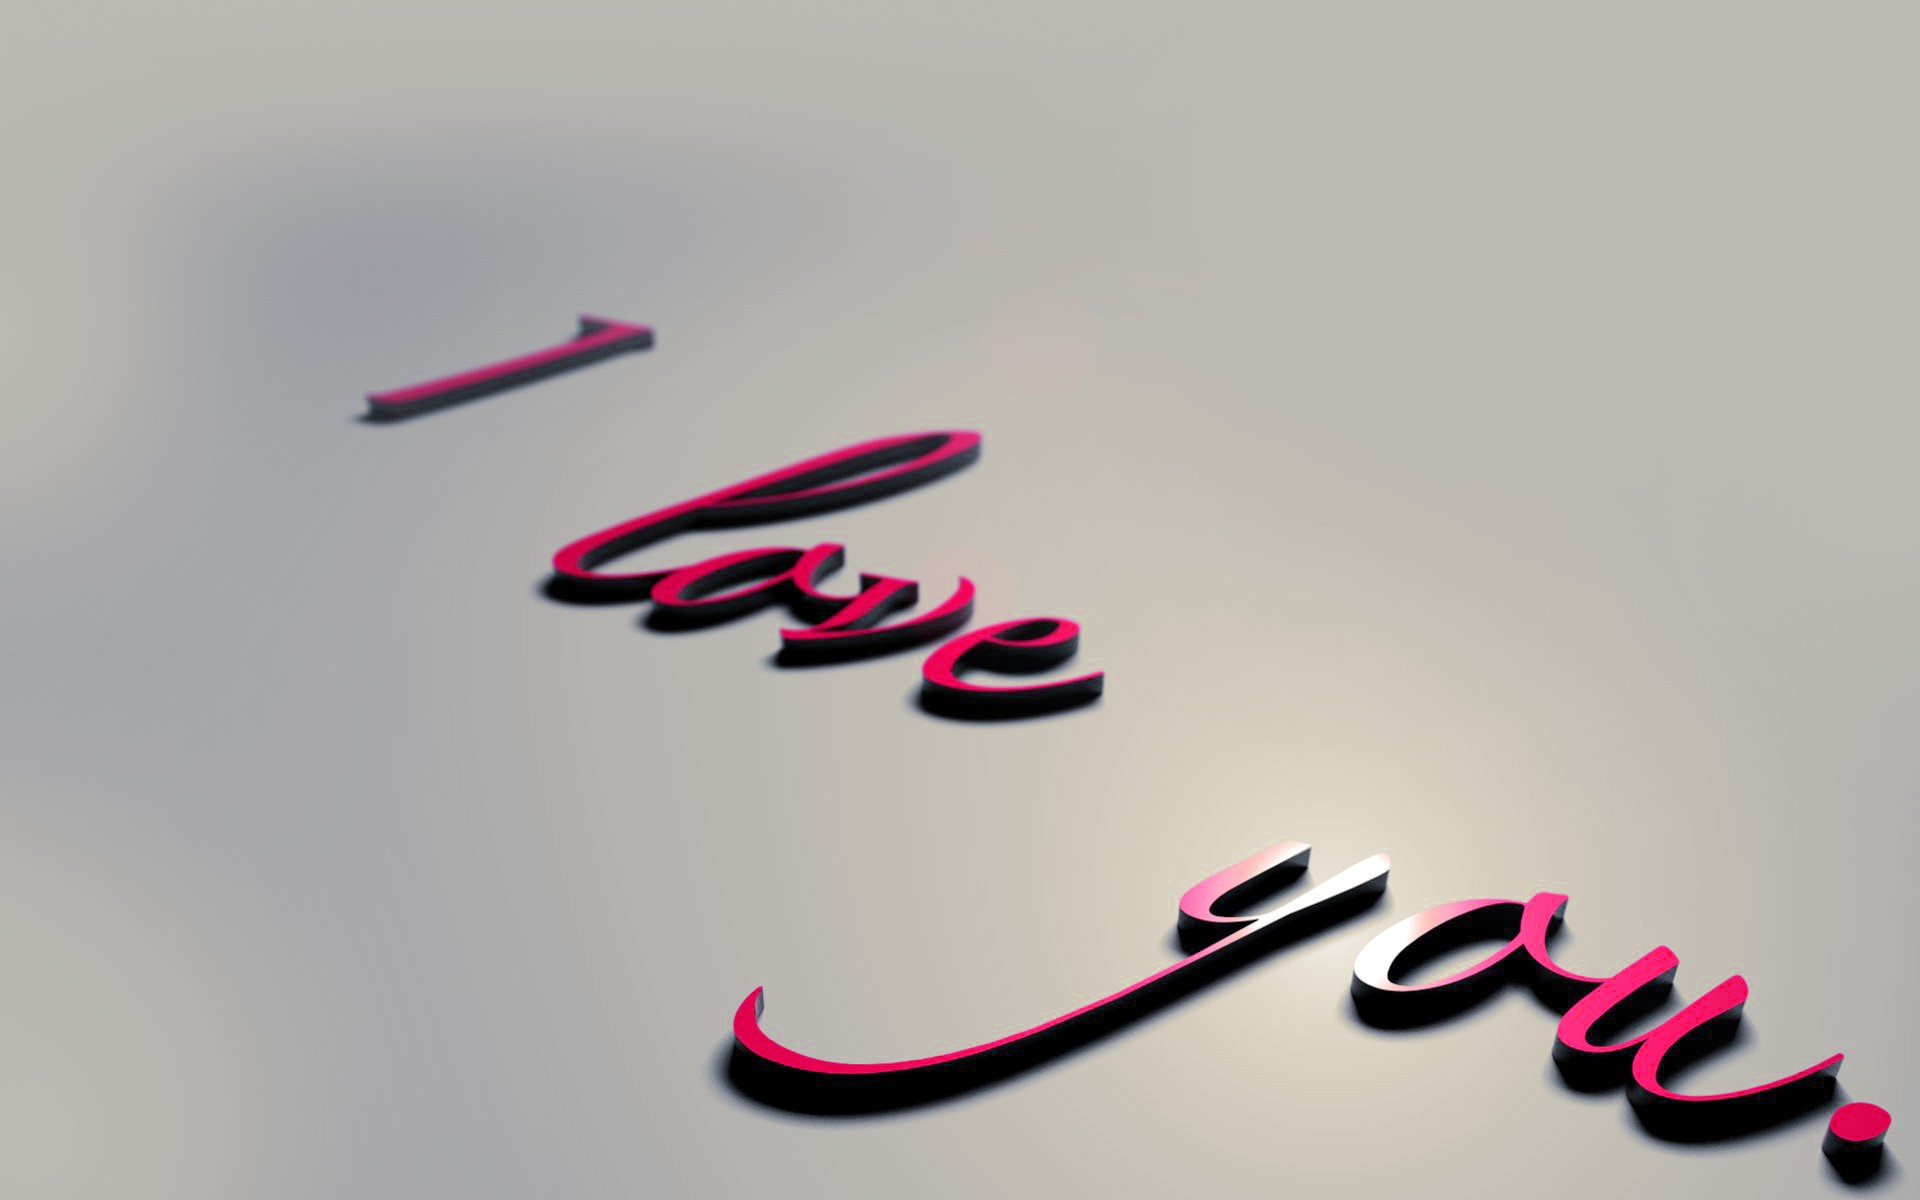 Love Images Hd 3d Wallpaper : 3D Love Letters 14 Hd Wallpaper - Hdlovewall.com